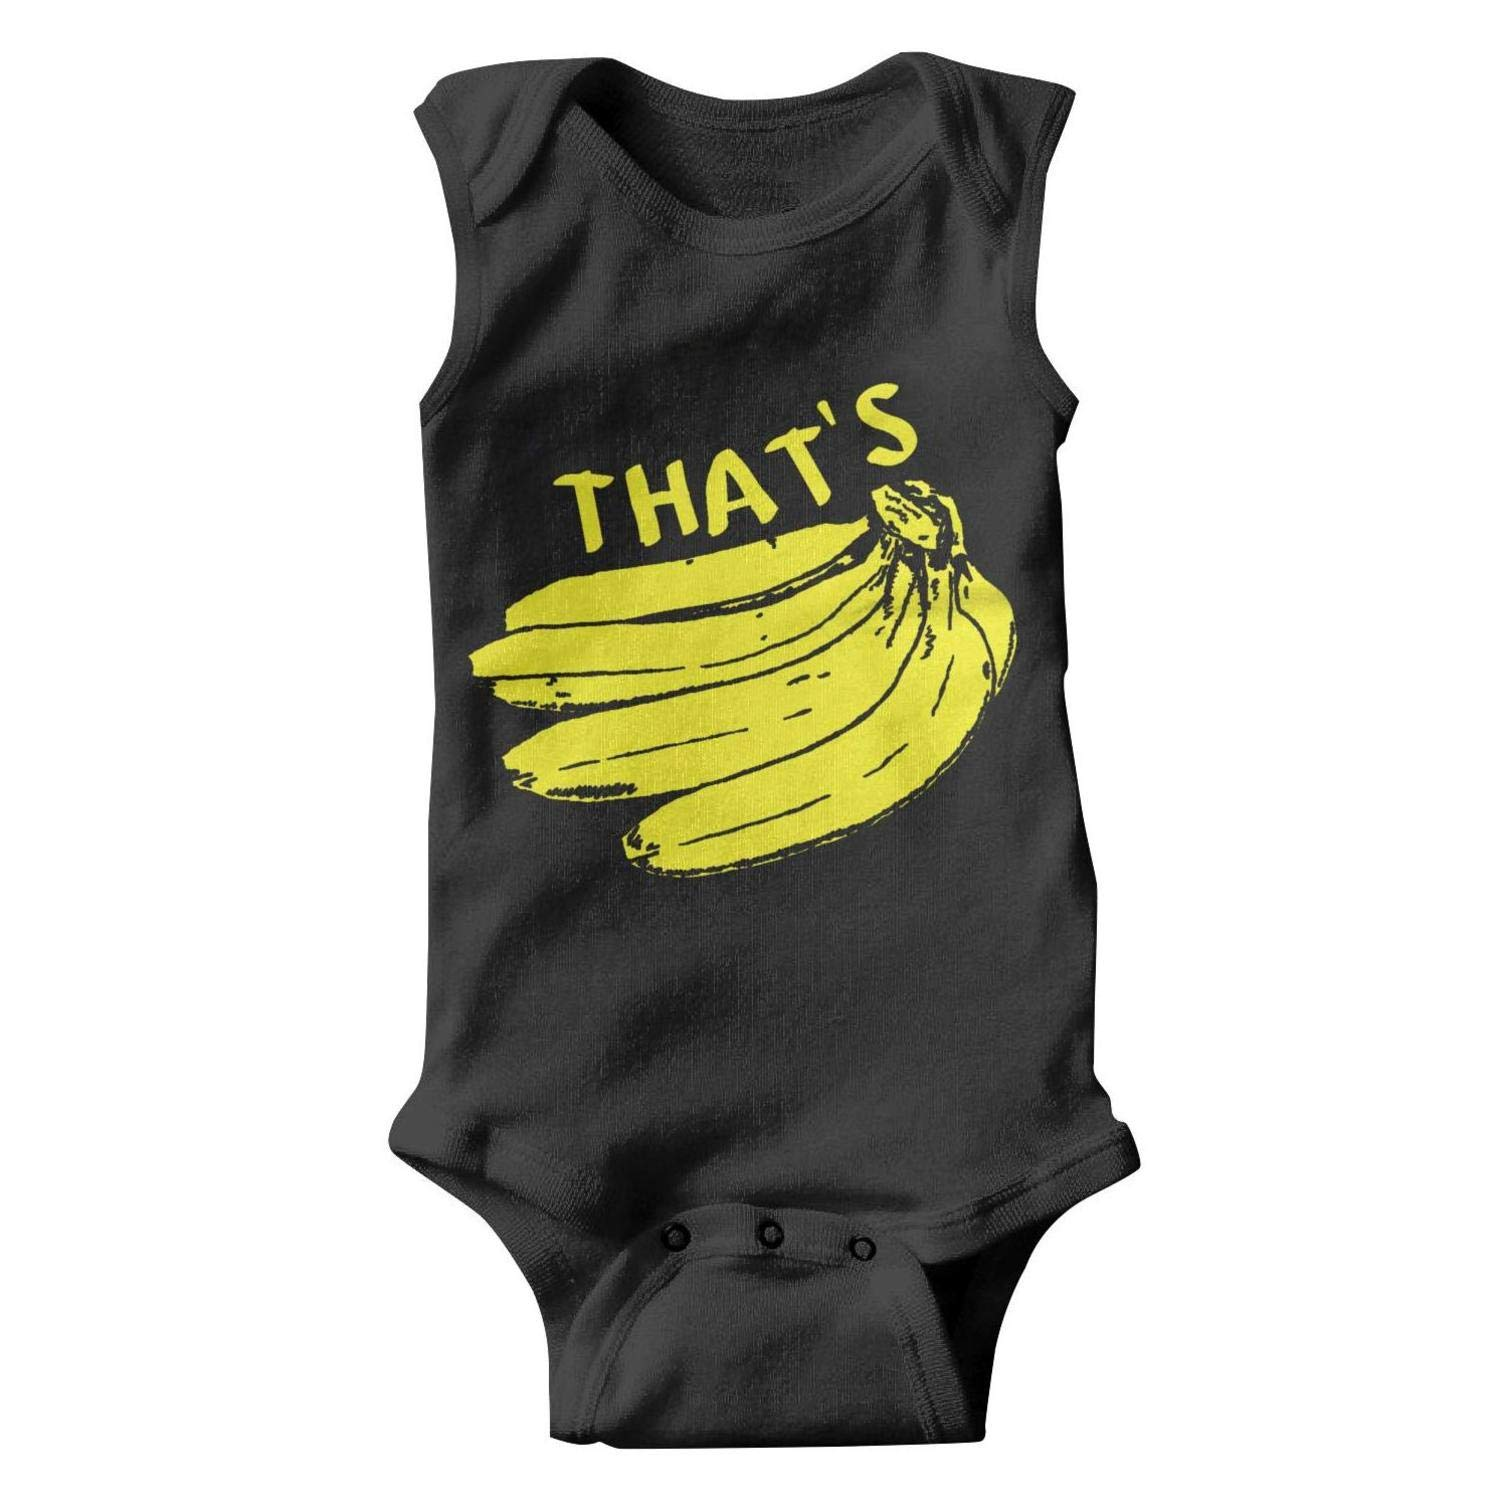 Thats Bananas Funny Monkey Baby Onesie Sleeveless Organic Cotton Bodysuits Set for Unisex Boys Girls